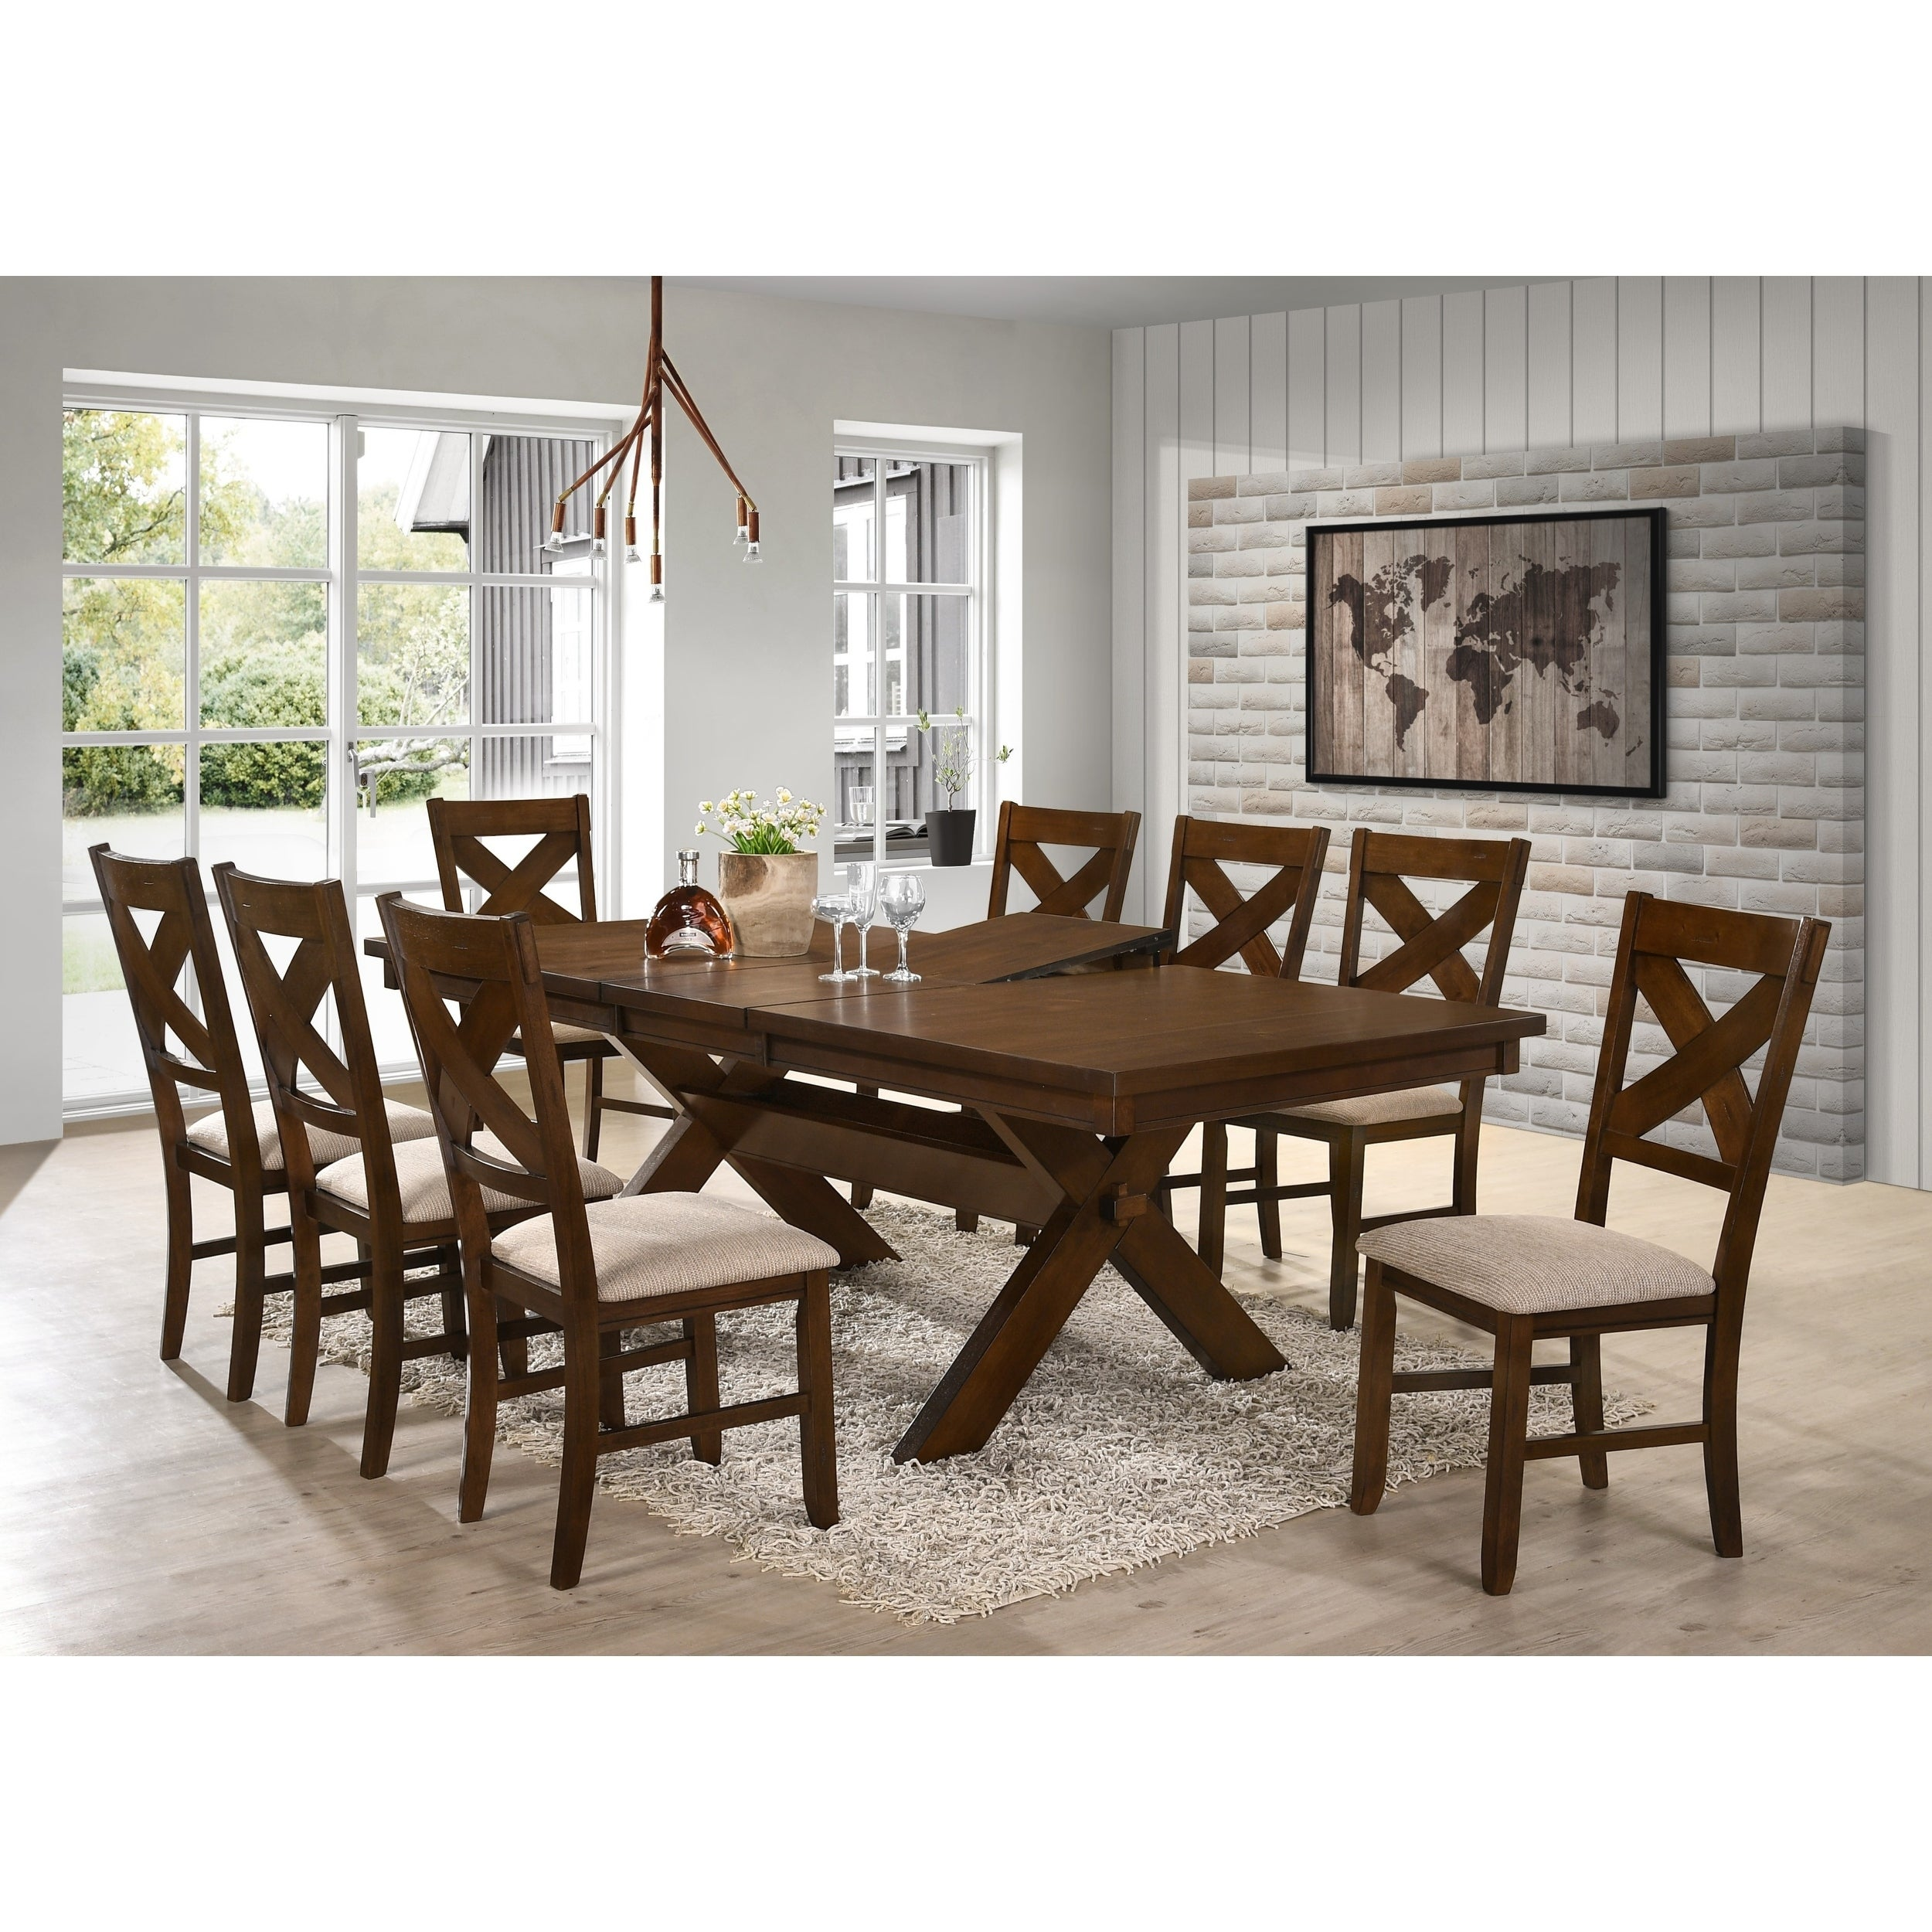 9 Piece Solid Wood Dining Set With Table And 8 Chairs Free Shipping Today 11691458